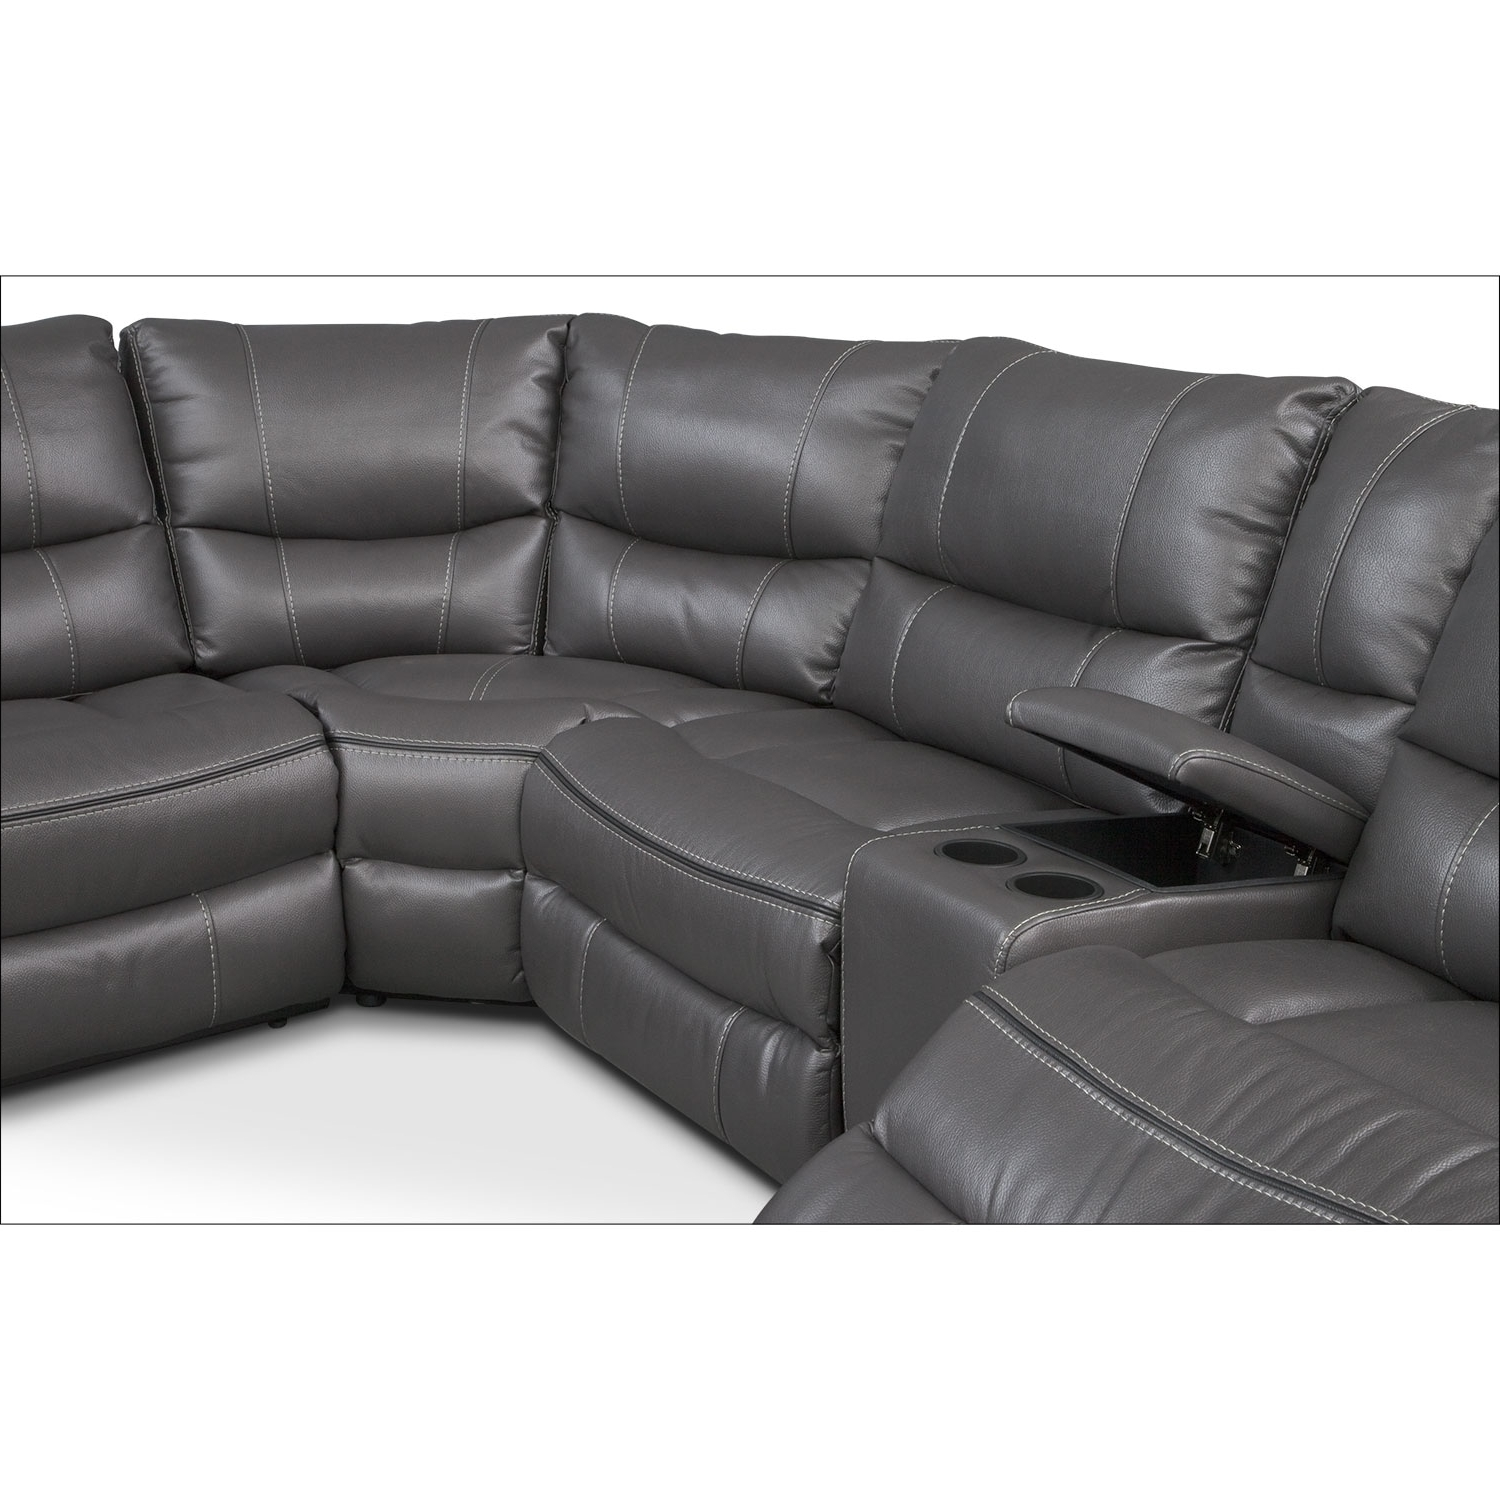 Current Orlando Sectional Sofas Regarding Orlando 6 Piece Power Reclining Sectional With 1 Stationary Chair (View 5 of 15)